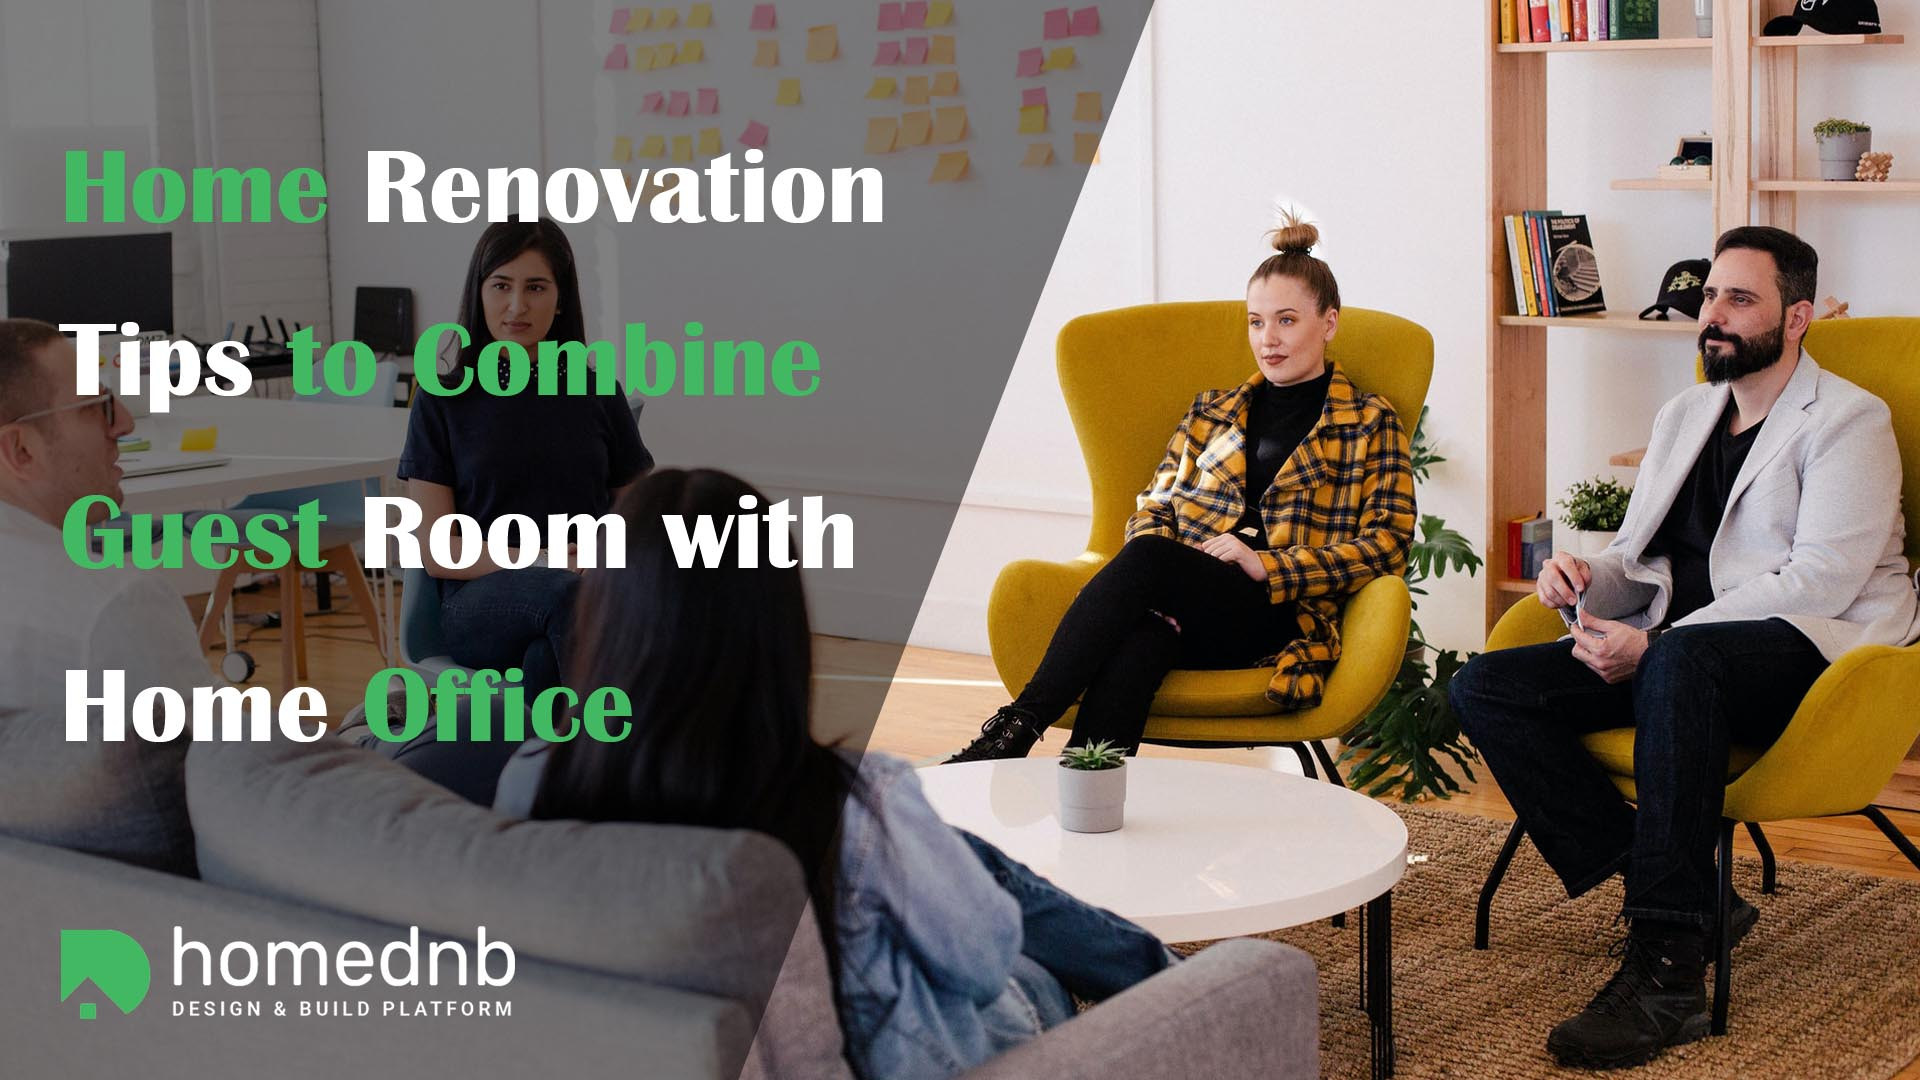 Home Renovation Tips to Combine Guest Room with Home Office